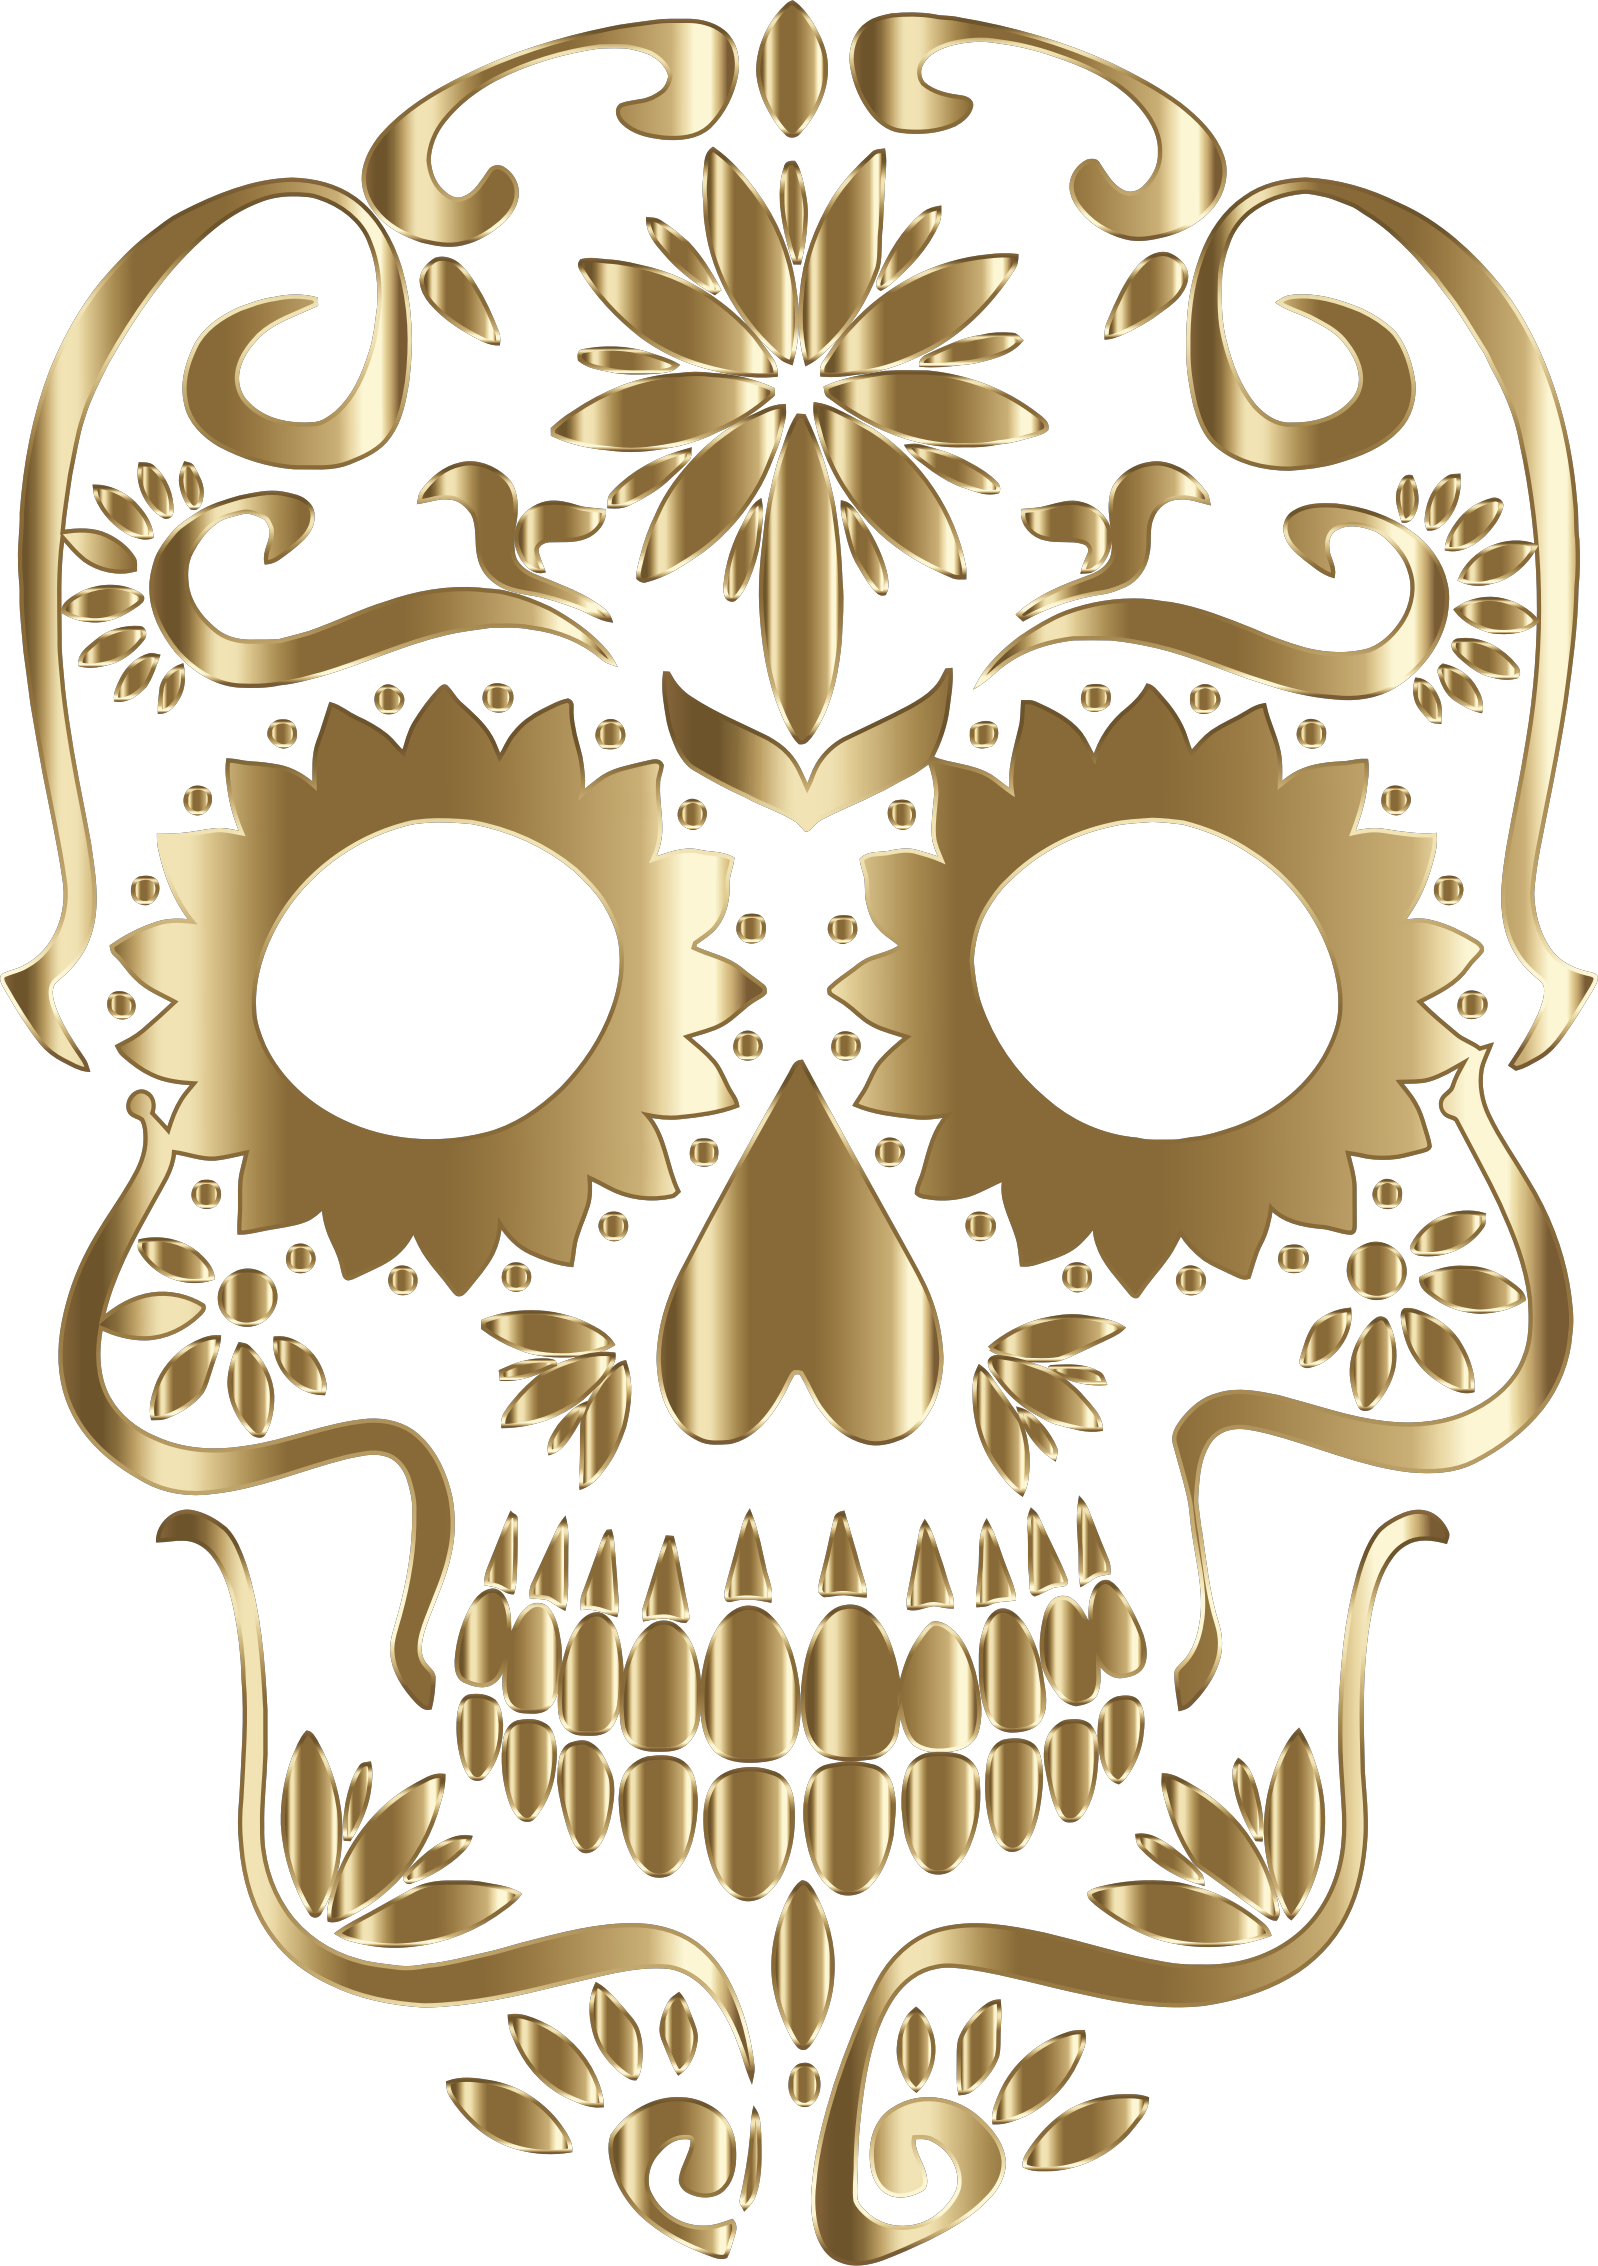 Polished Copper Sugar Skull Silhouette No Background by GDJ